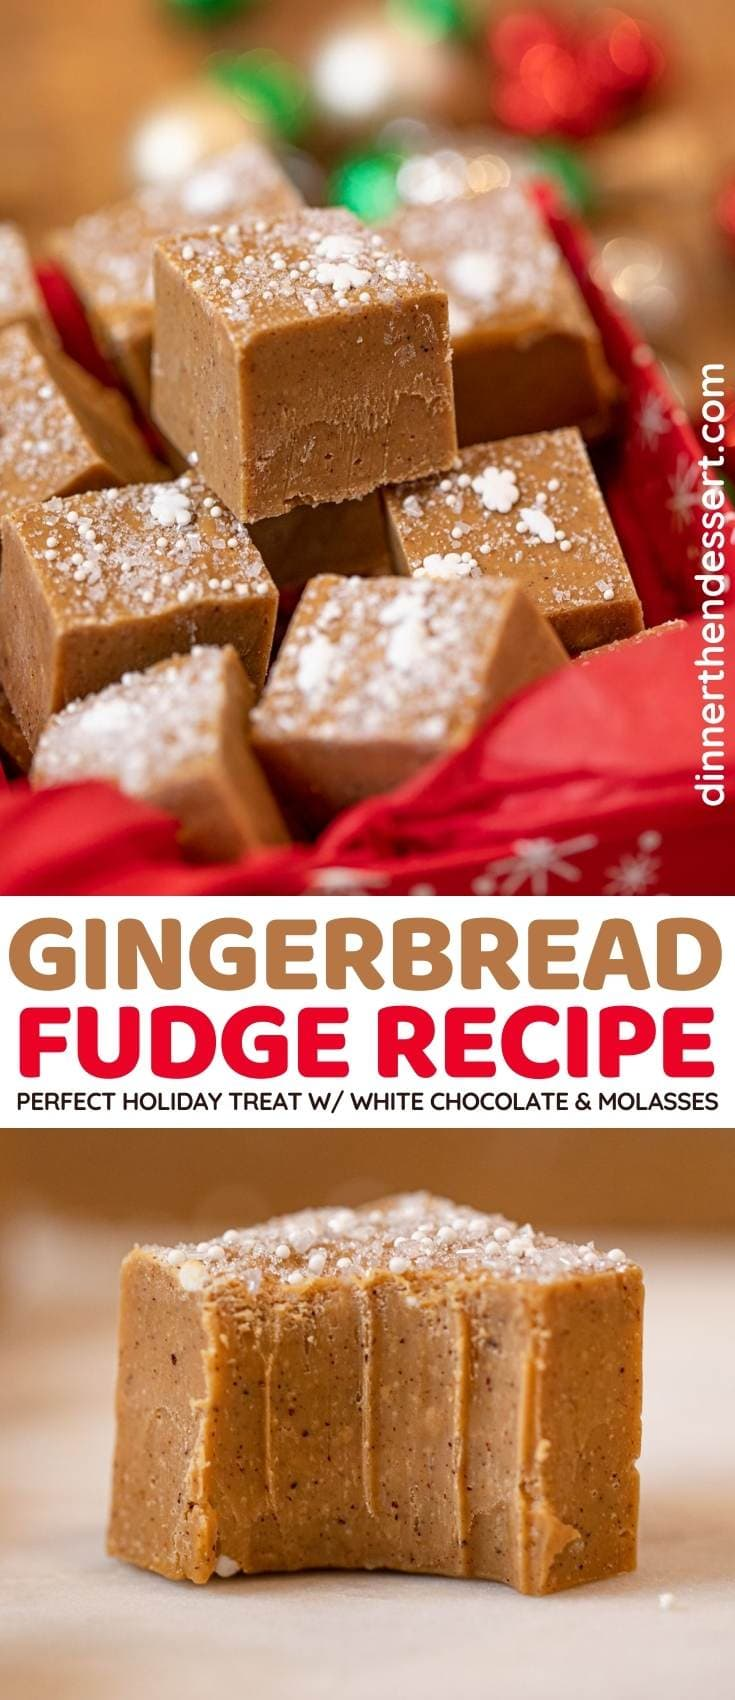 Gingerbread Fudge collage